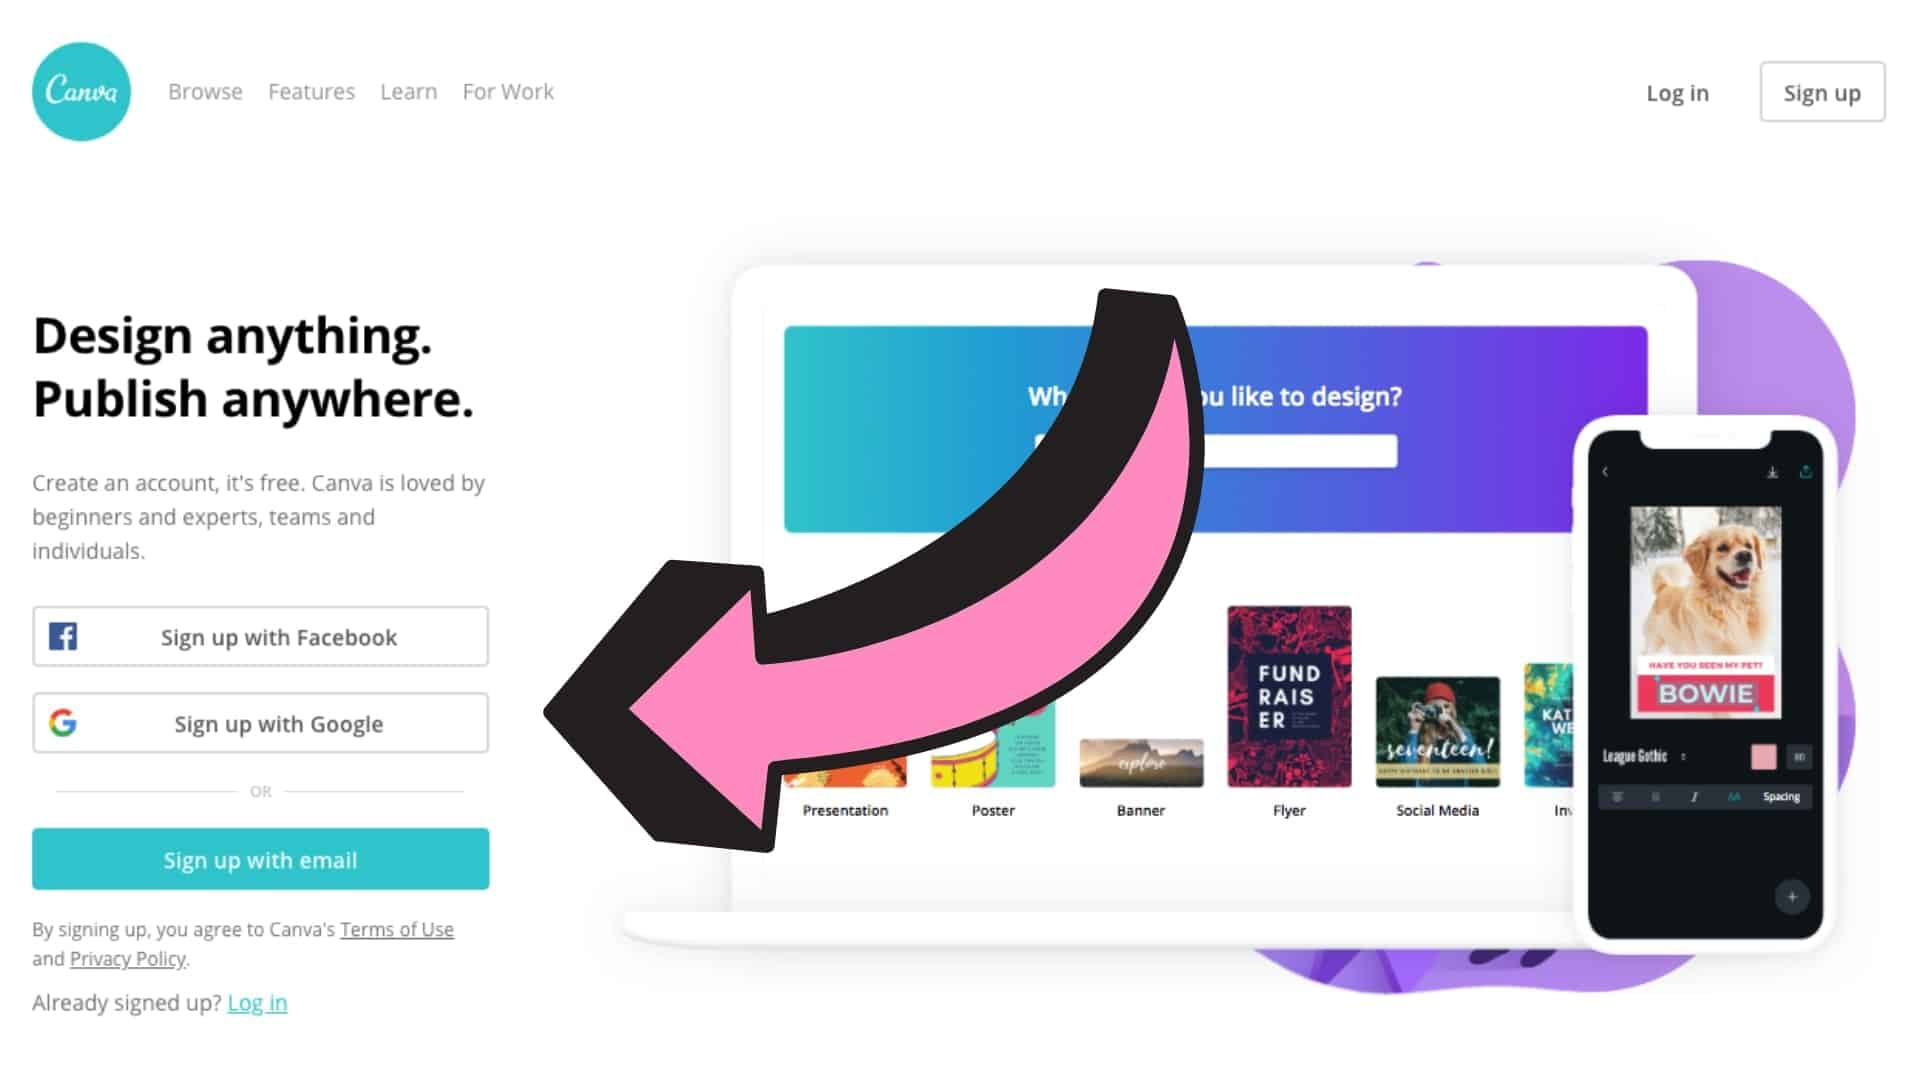 The home page of Canva with an arrow pointing to the area to sign up.